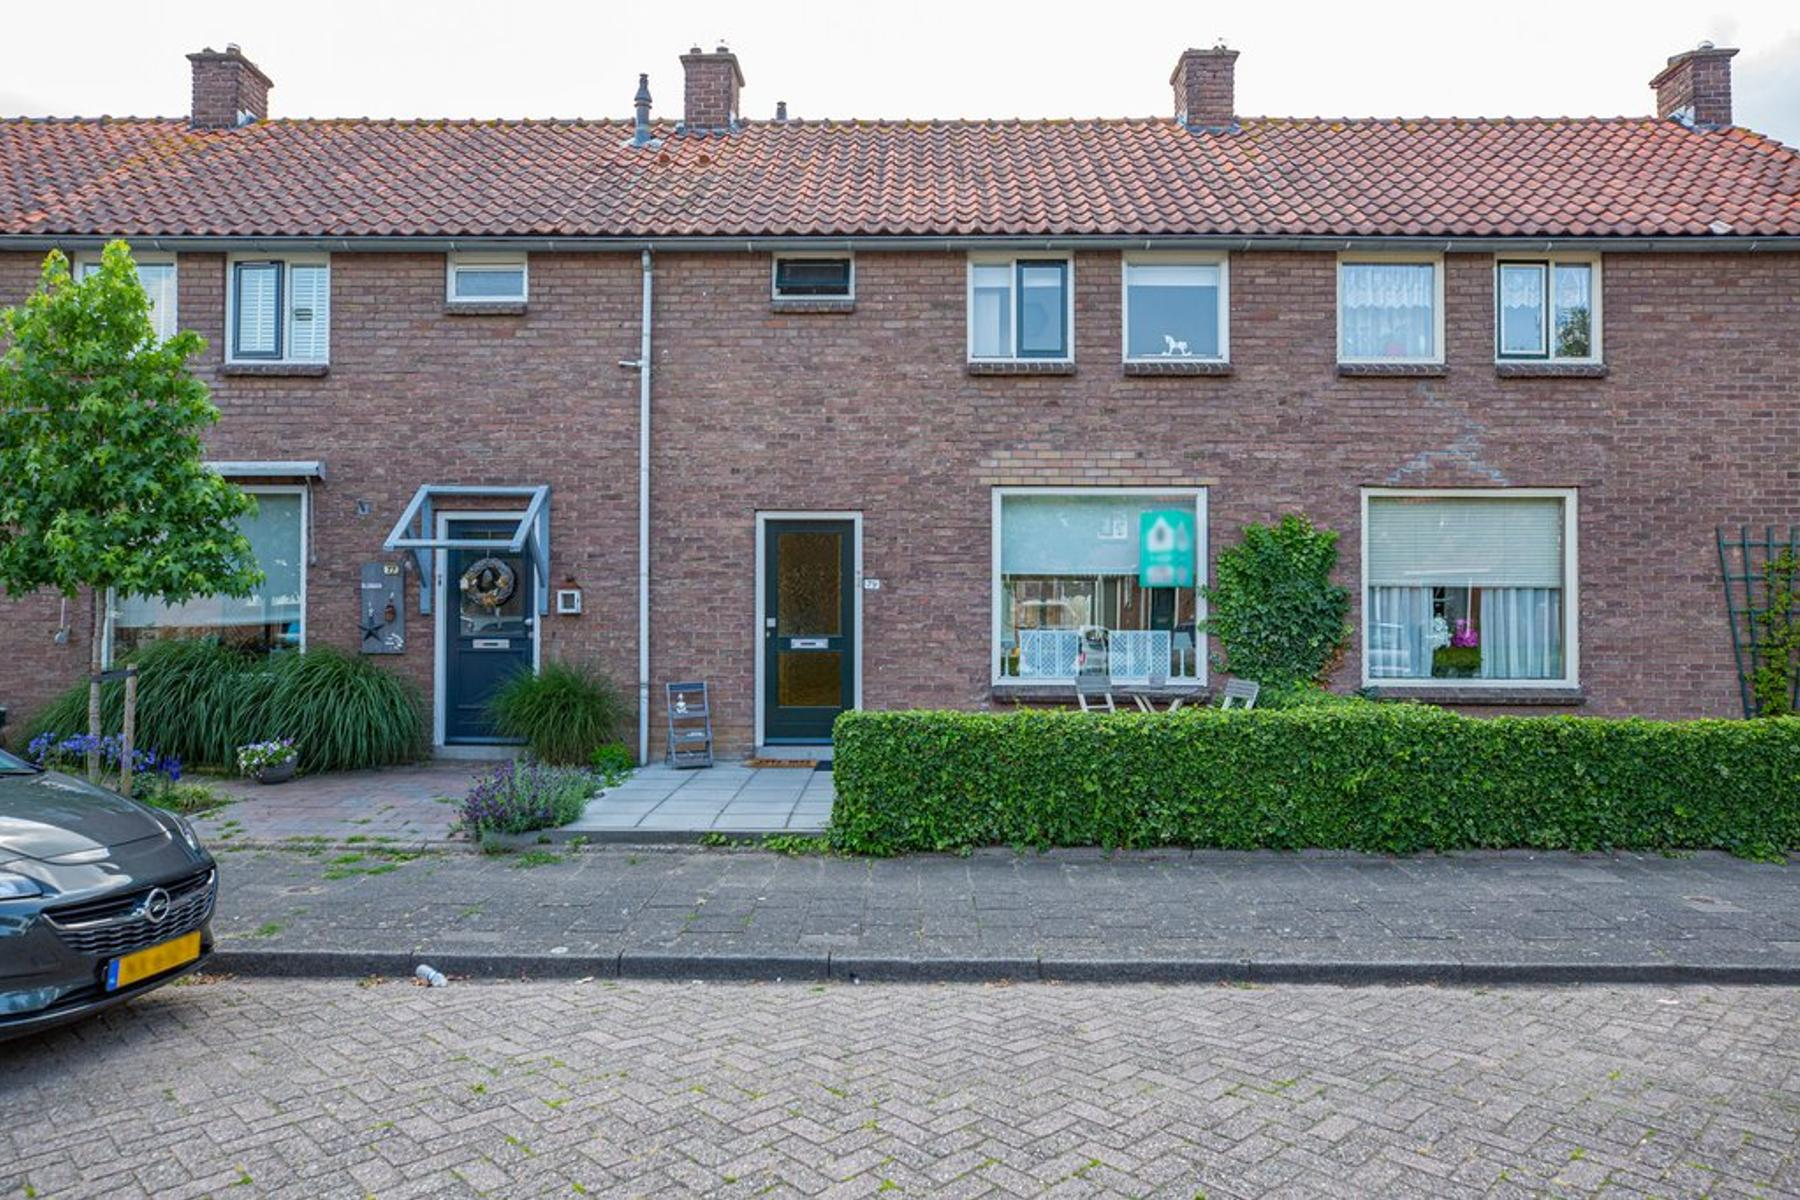 Mr. Heemskerkstraat 79 in Ridderkerk 2982 SH